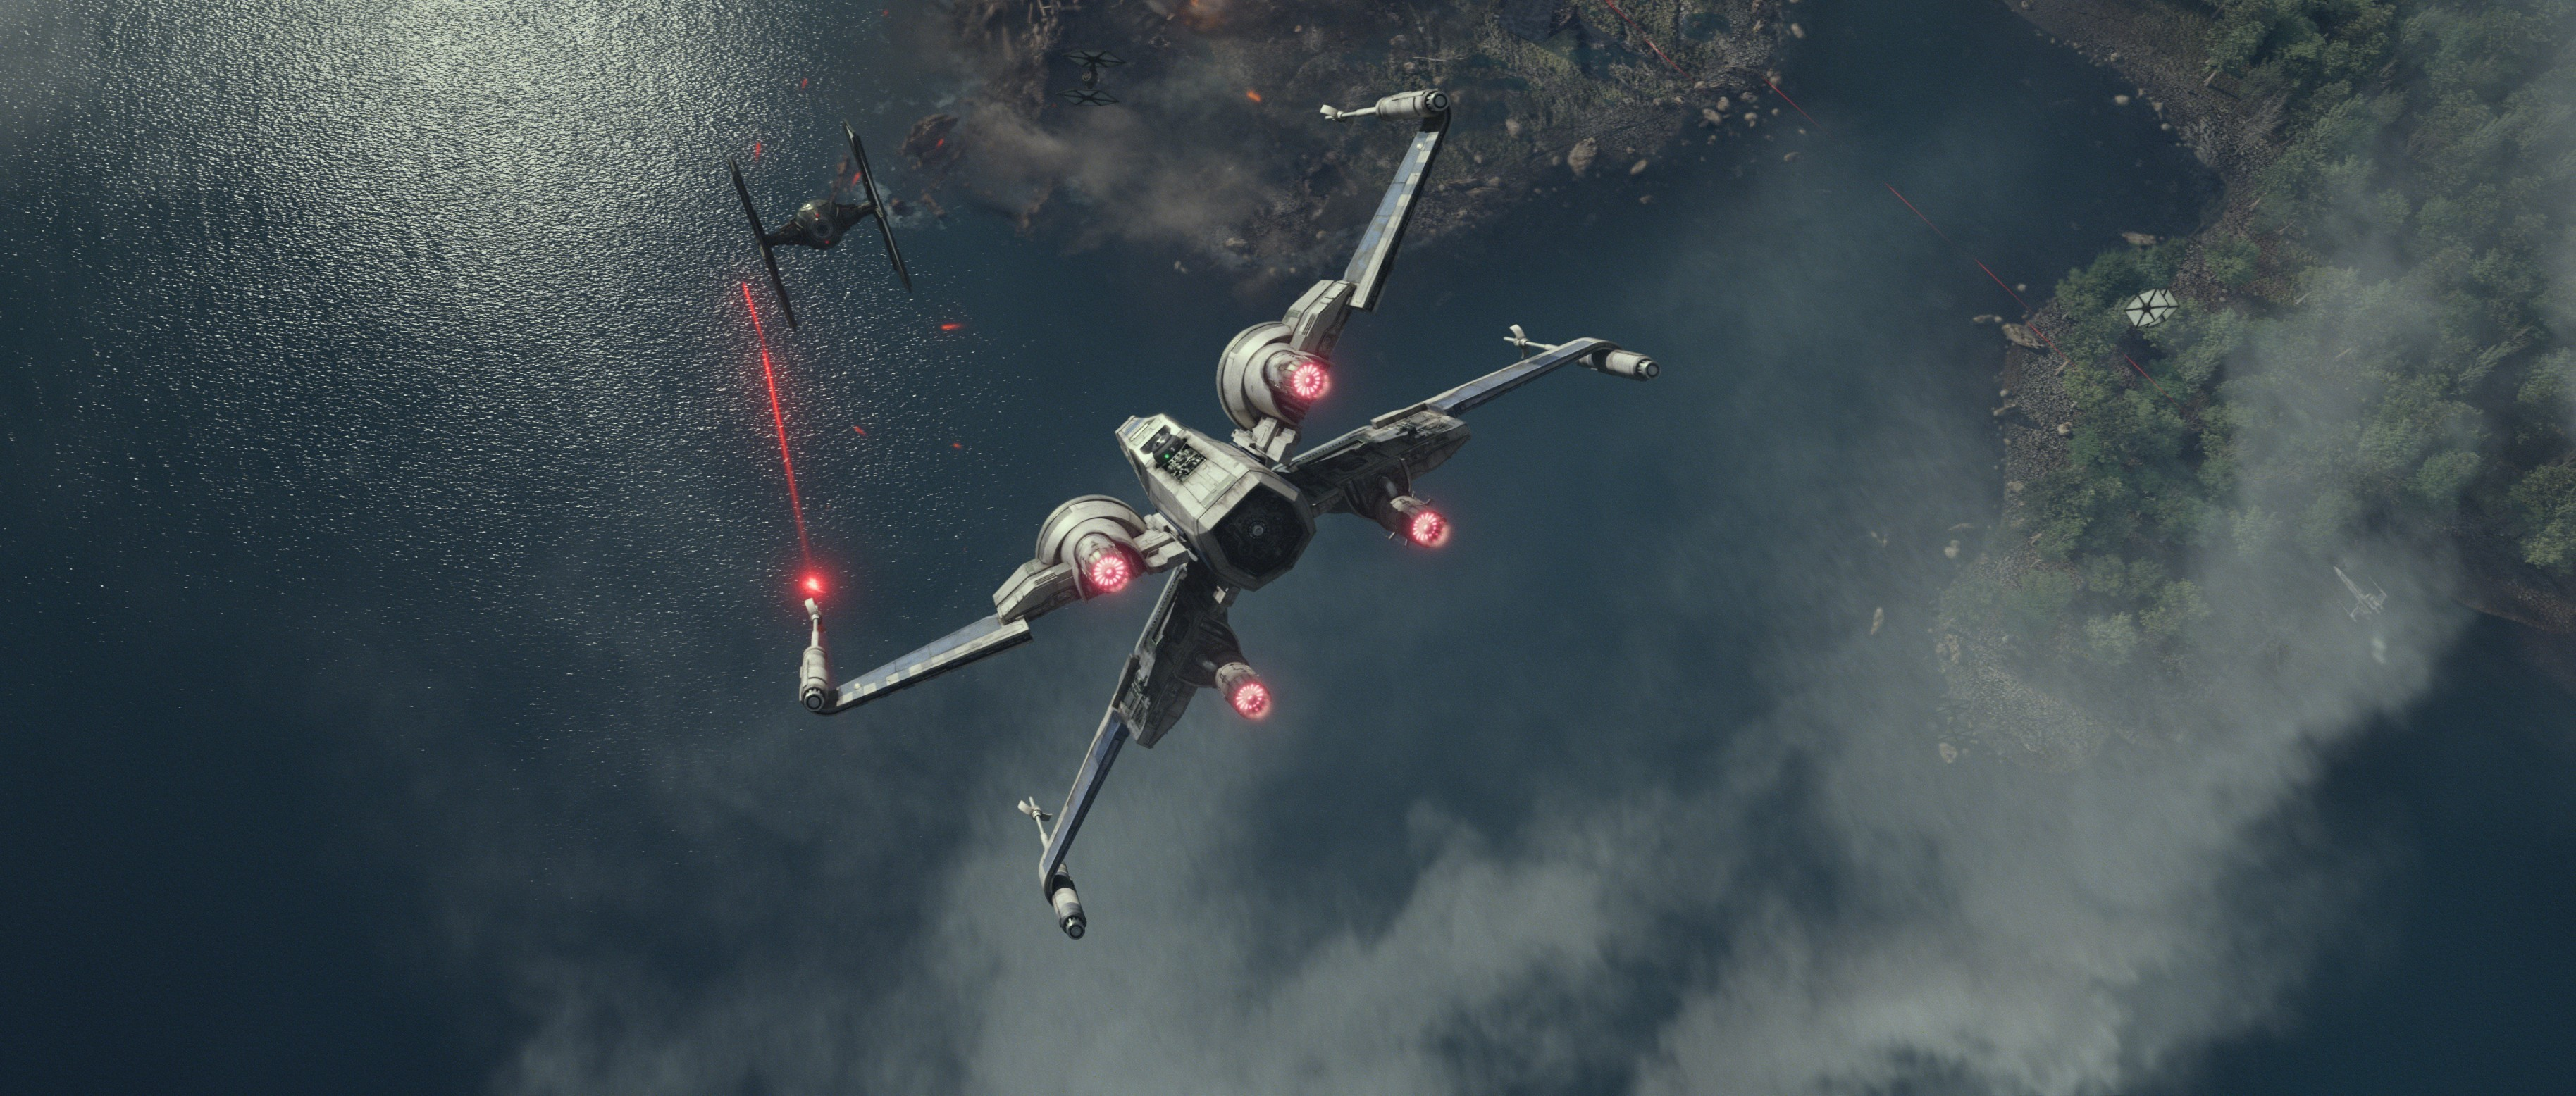 x wing wallpaper ·① download free beautiful full hd wallpapers